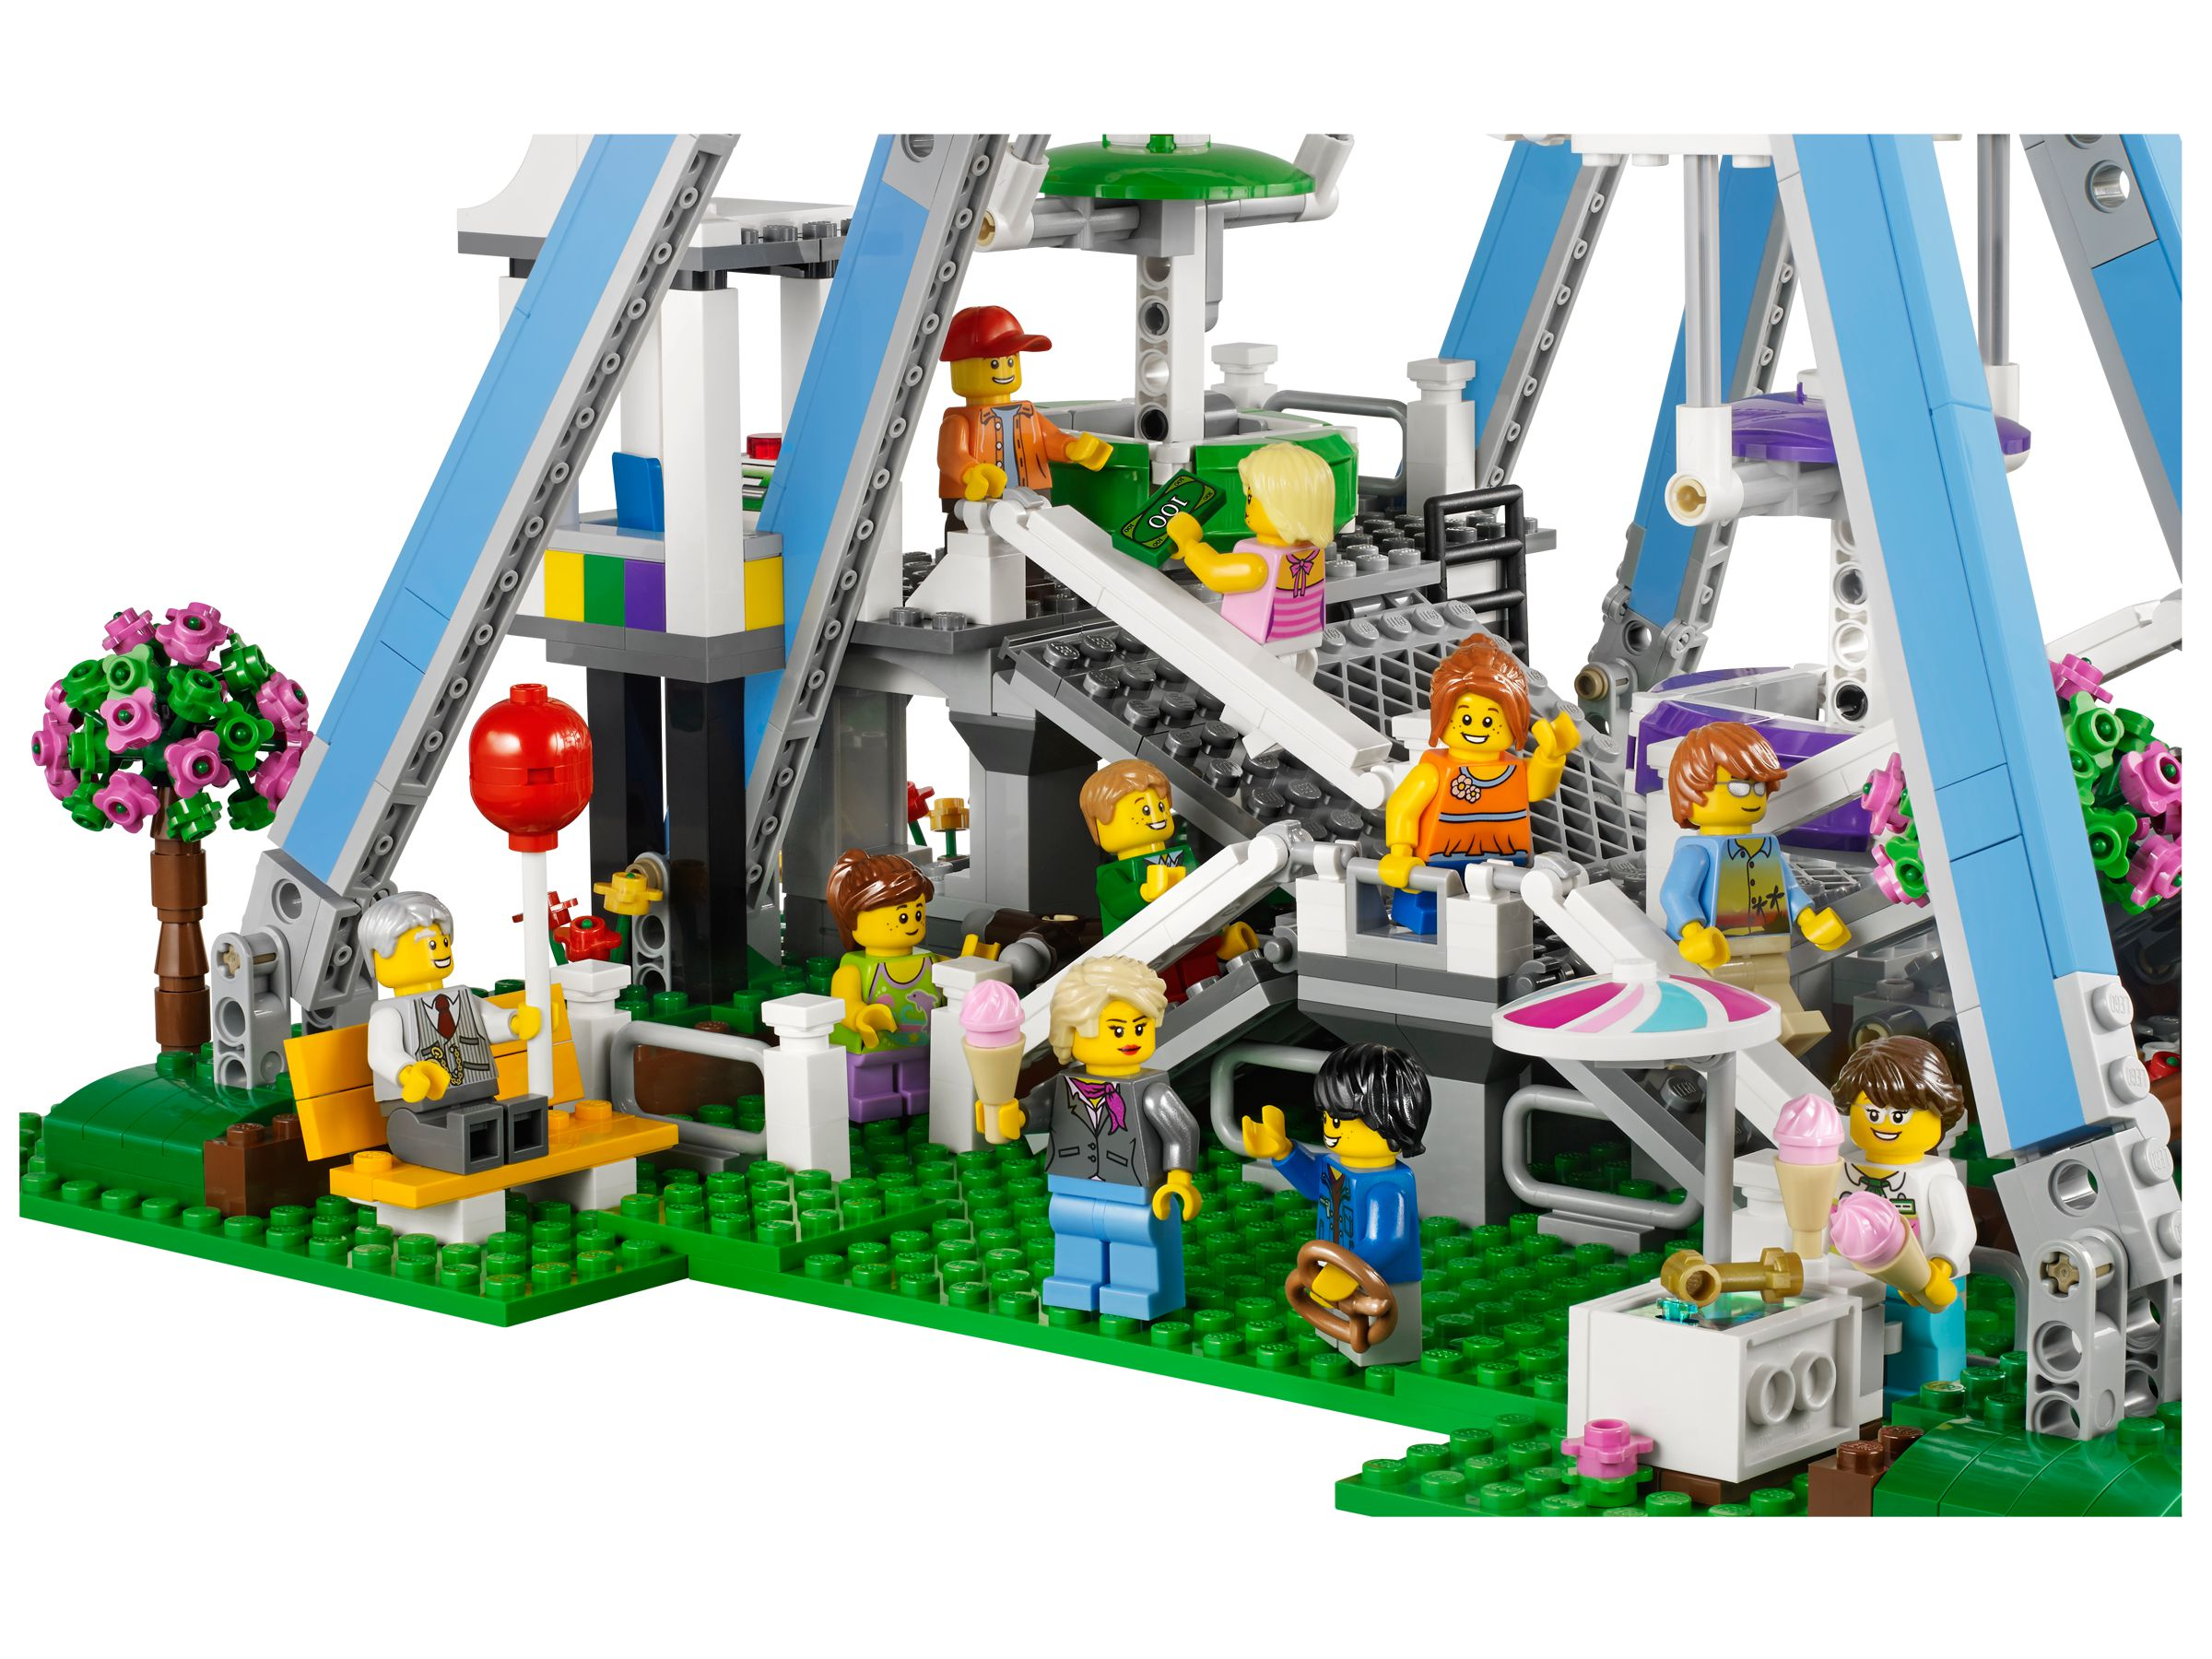 LEGO Advanced Models 10247 Riesenrad (Ferris Wheel) LEGO_10247_alt3.jpg